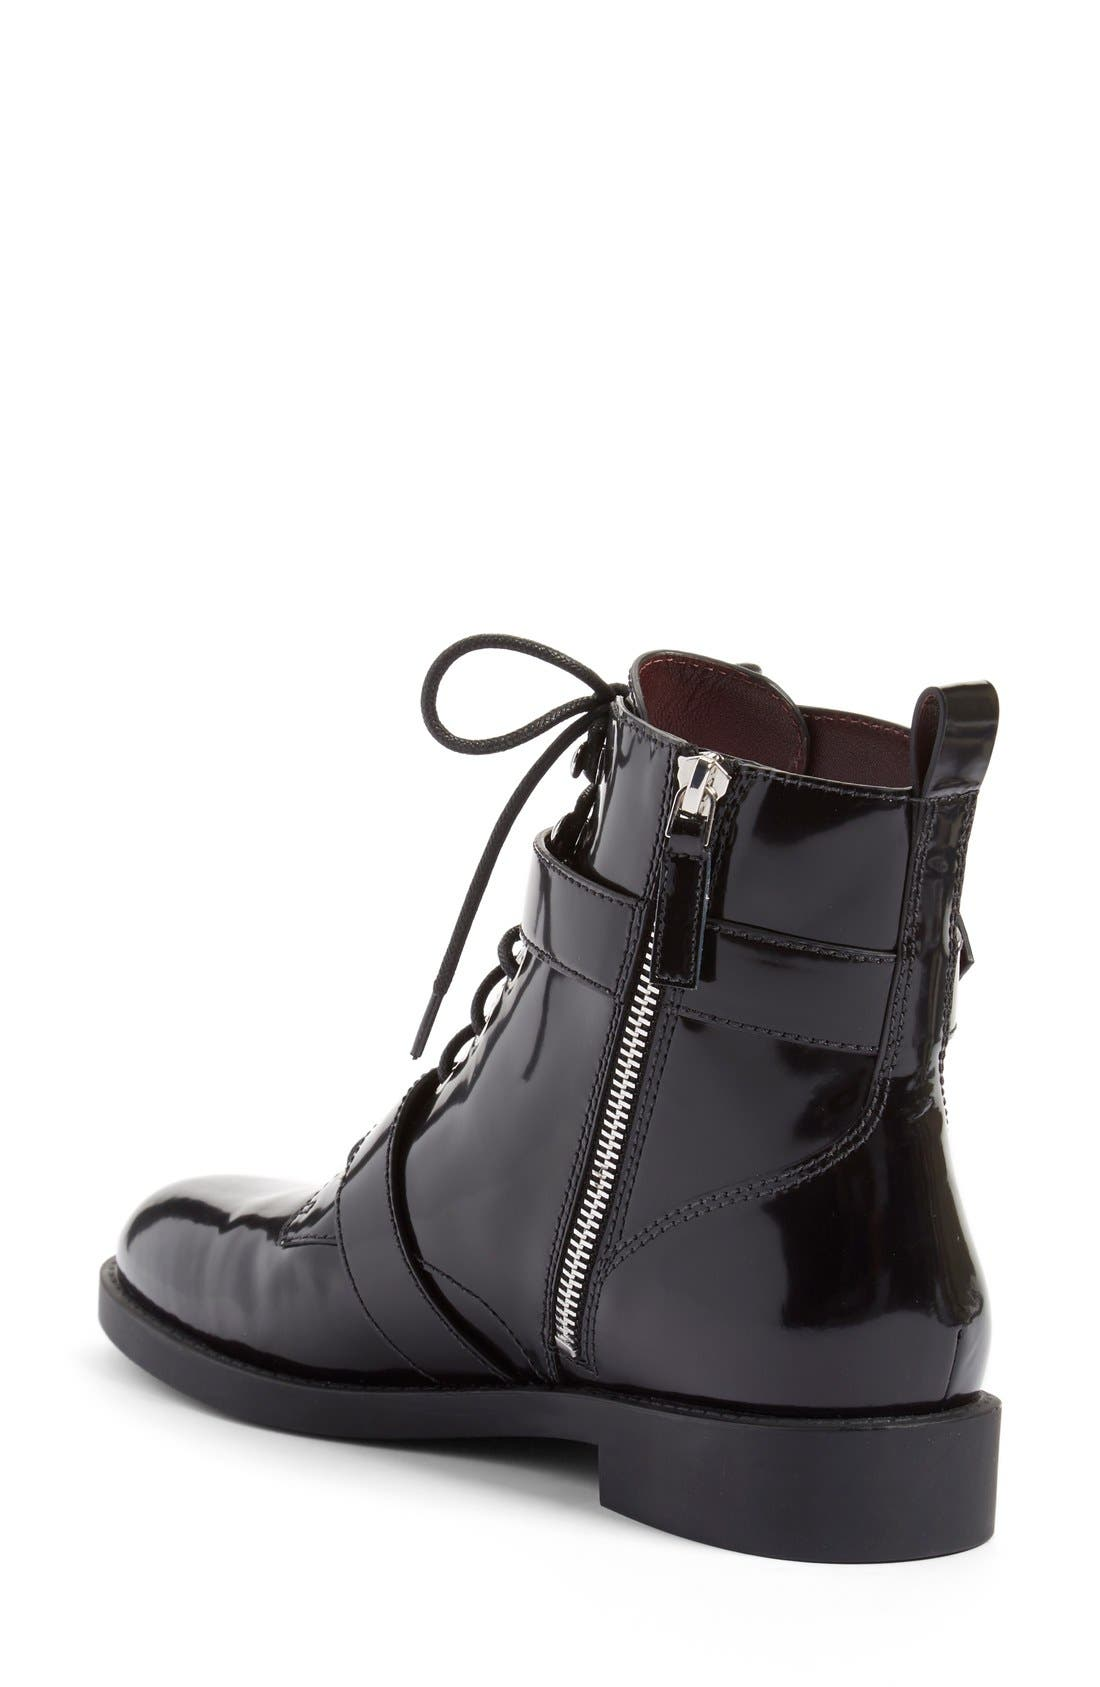 Alternate Image 2  - MARC JACOBS 'Taylor' Moto Ankle Boot (Women)